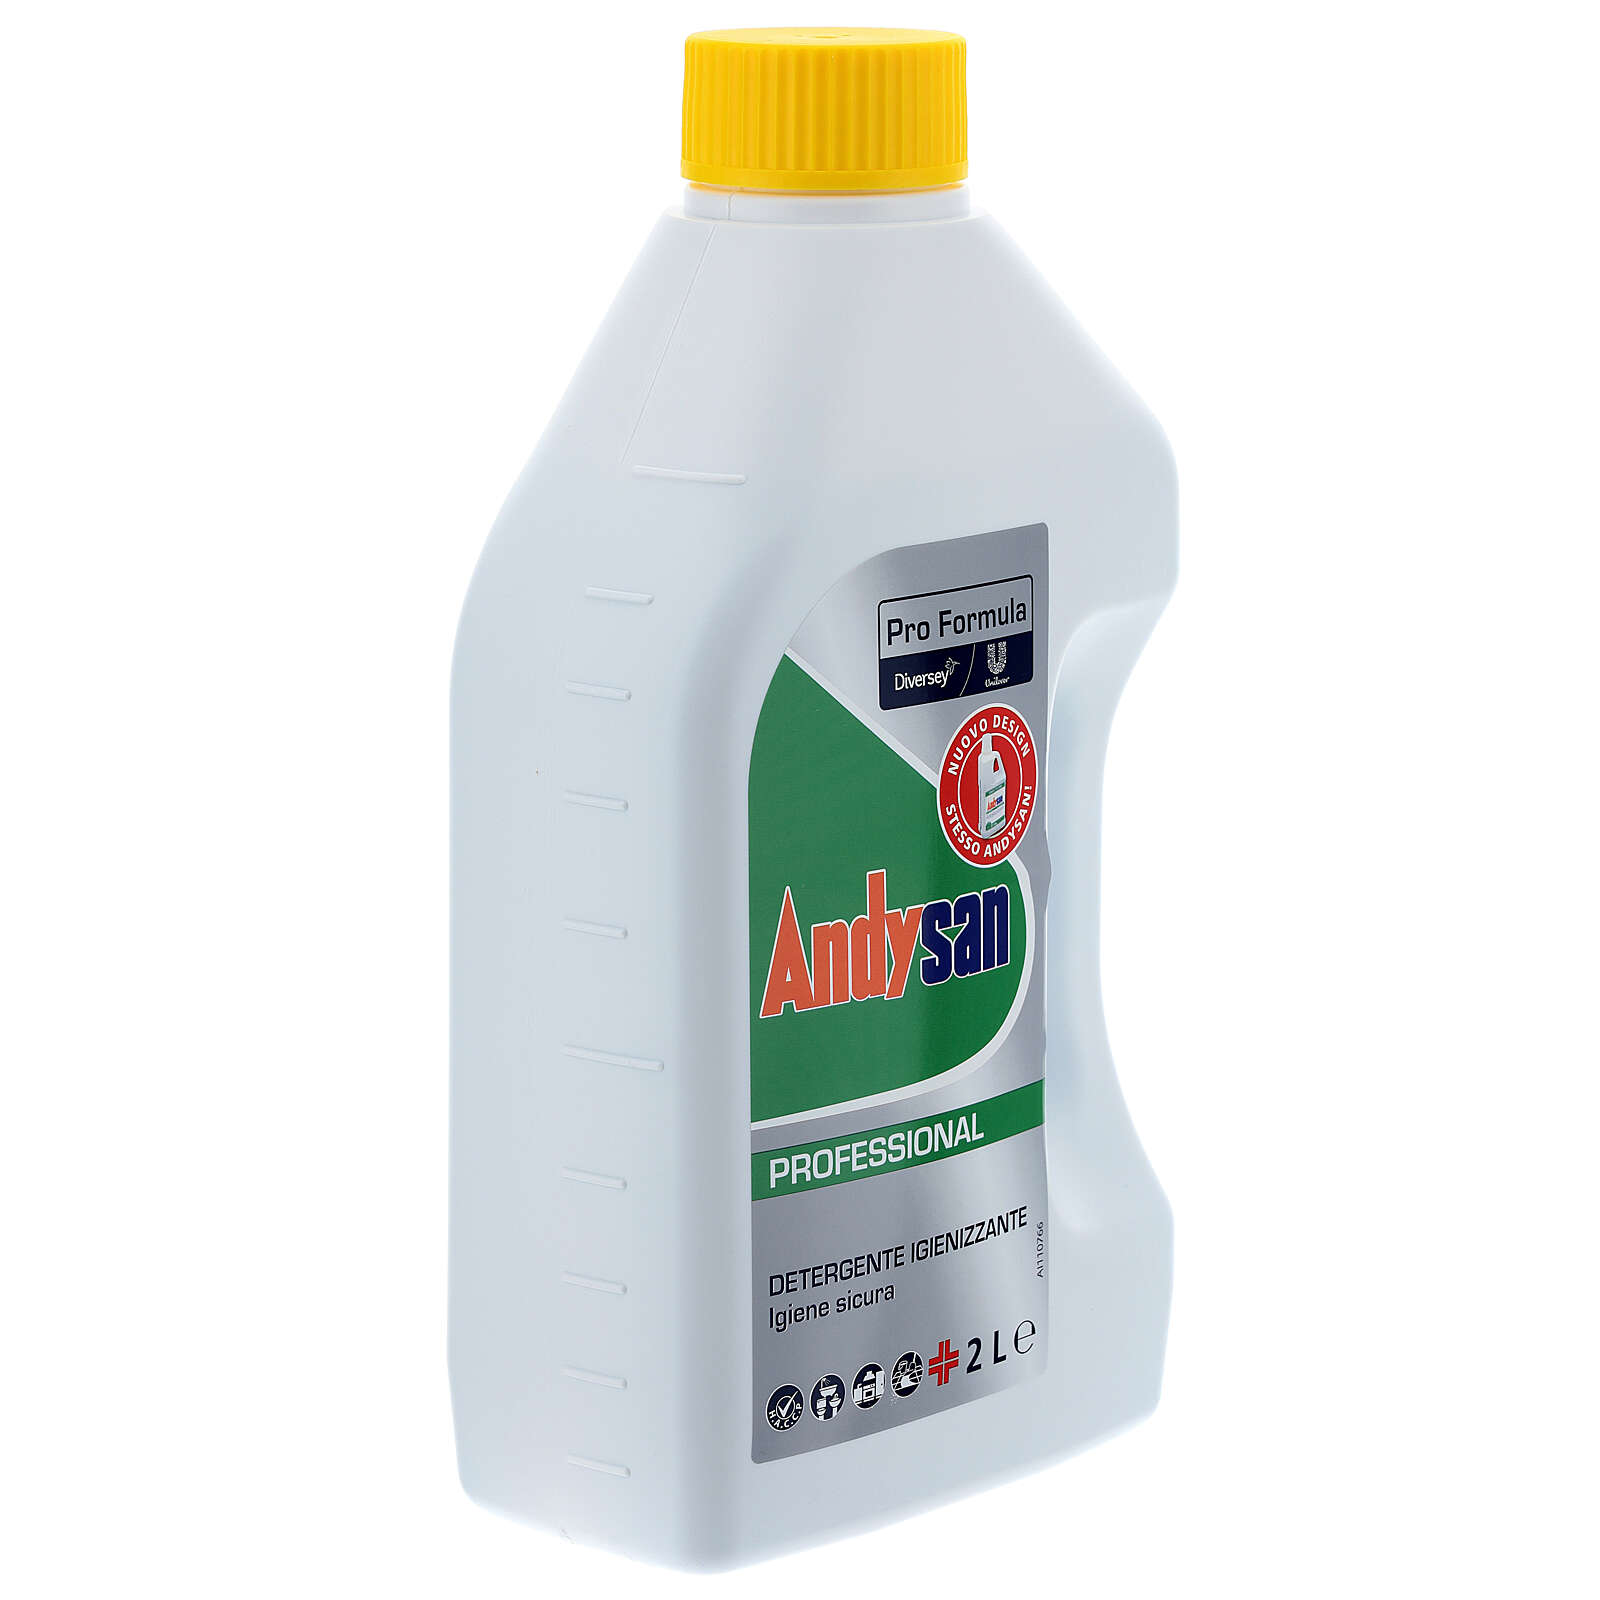 Andysan Professional Sanitising Cleaner 2 litres 3